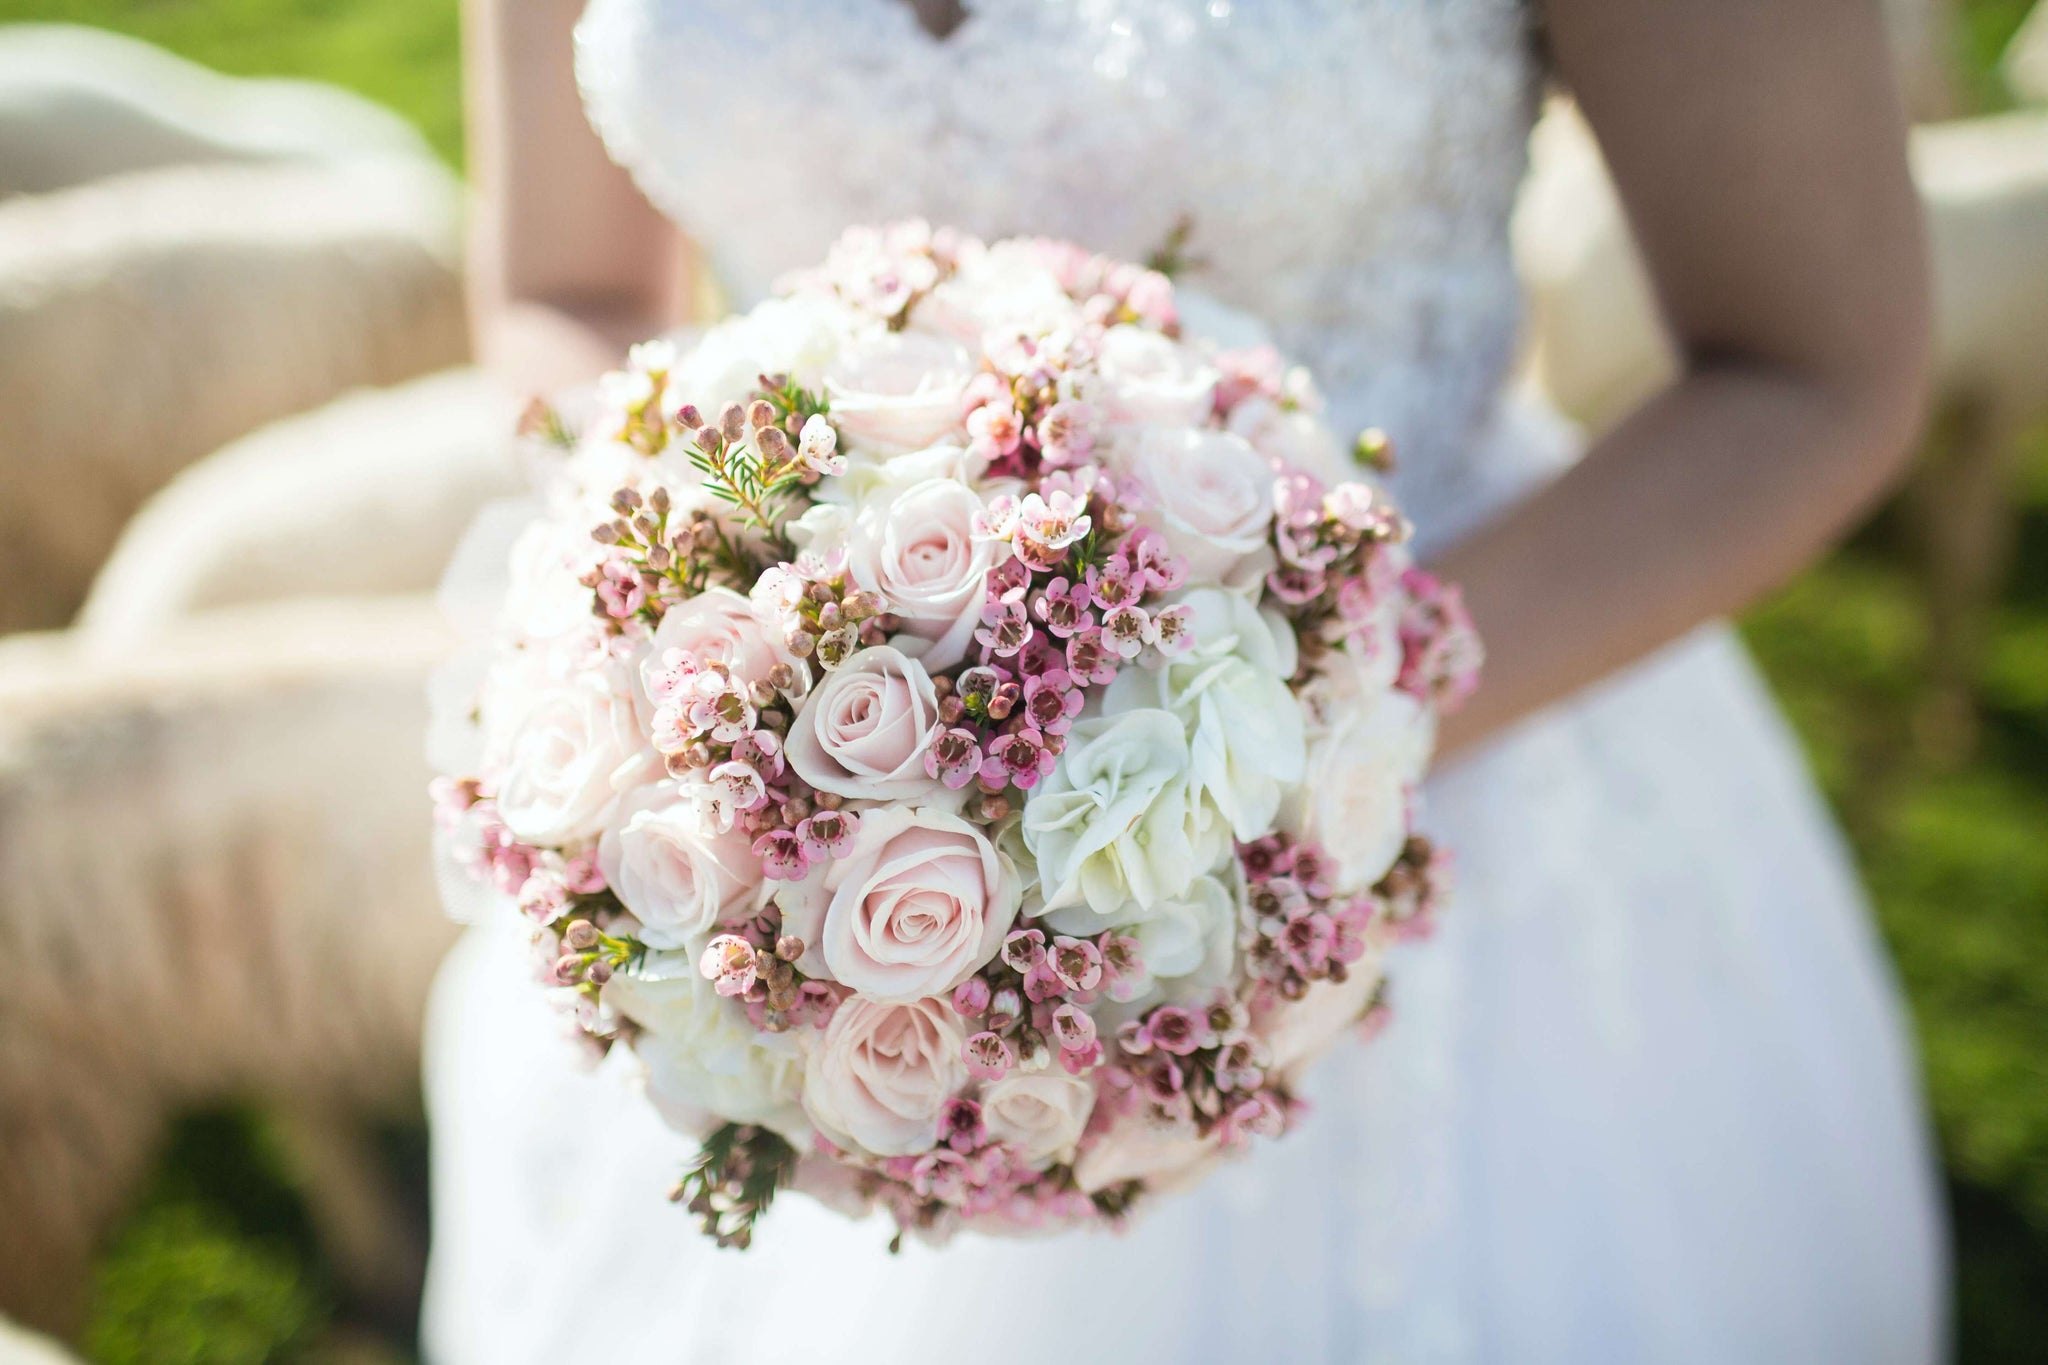 woman holding white and pink petal bouquet